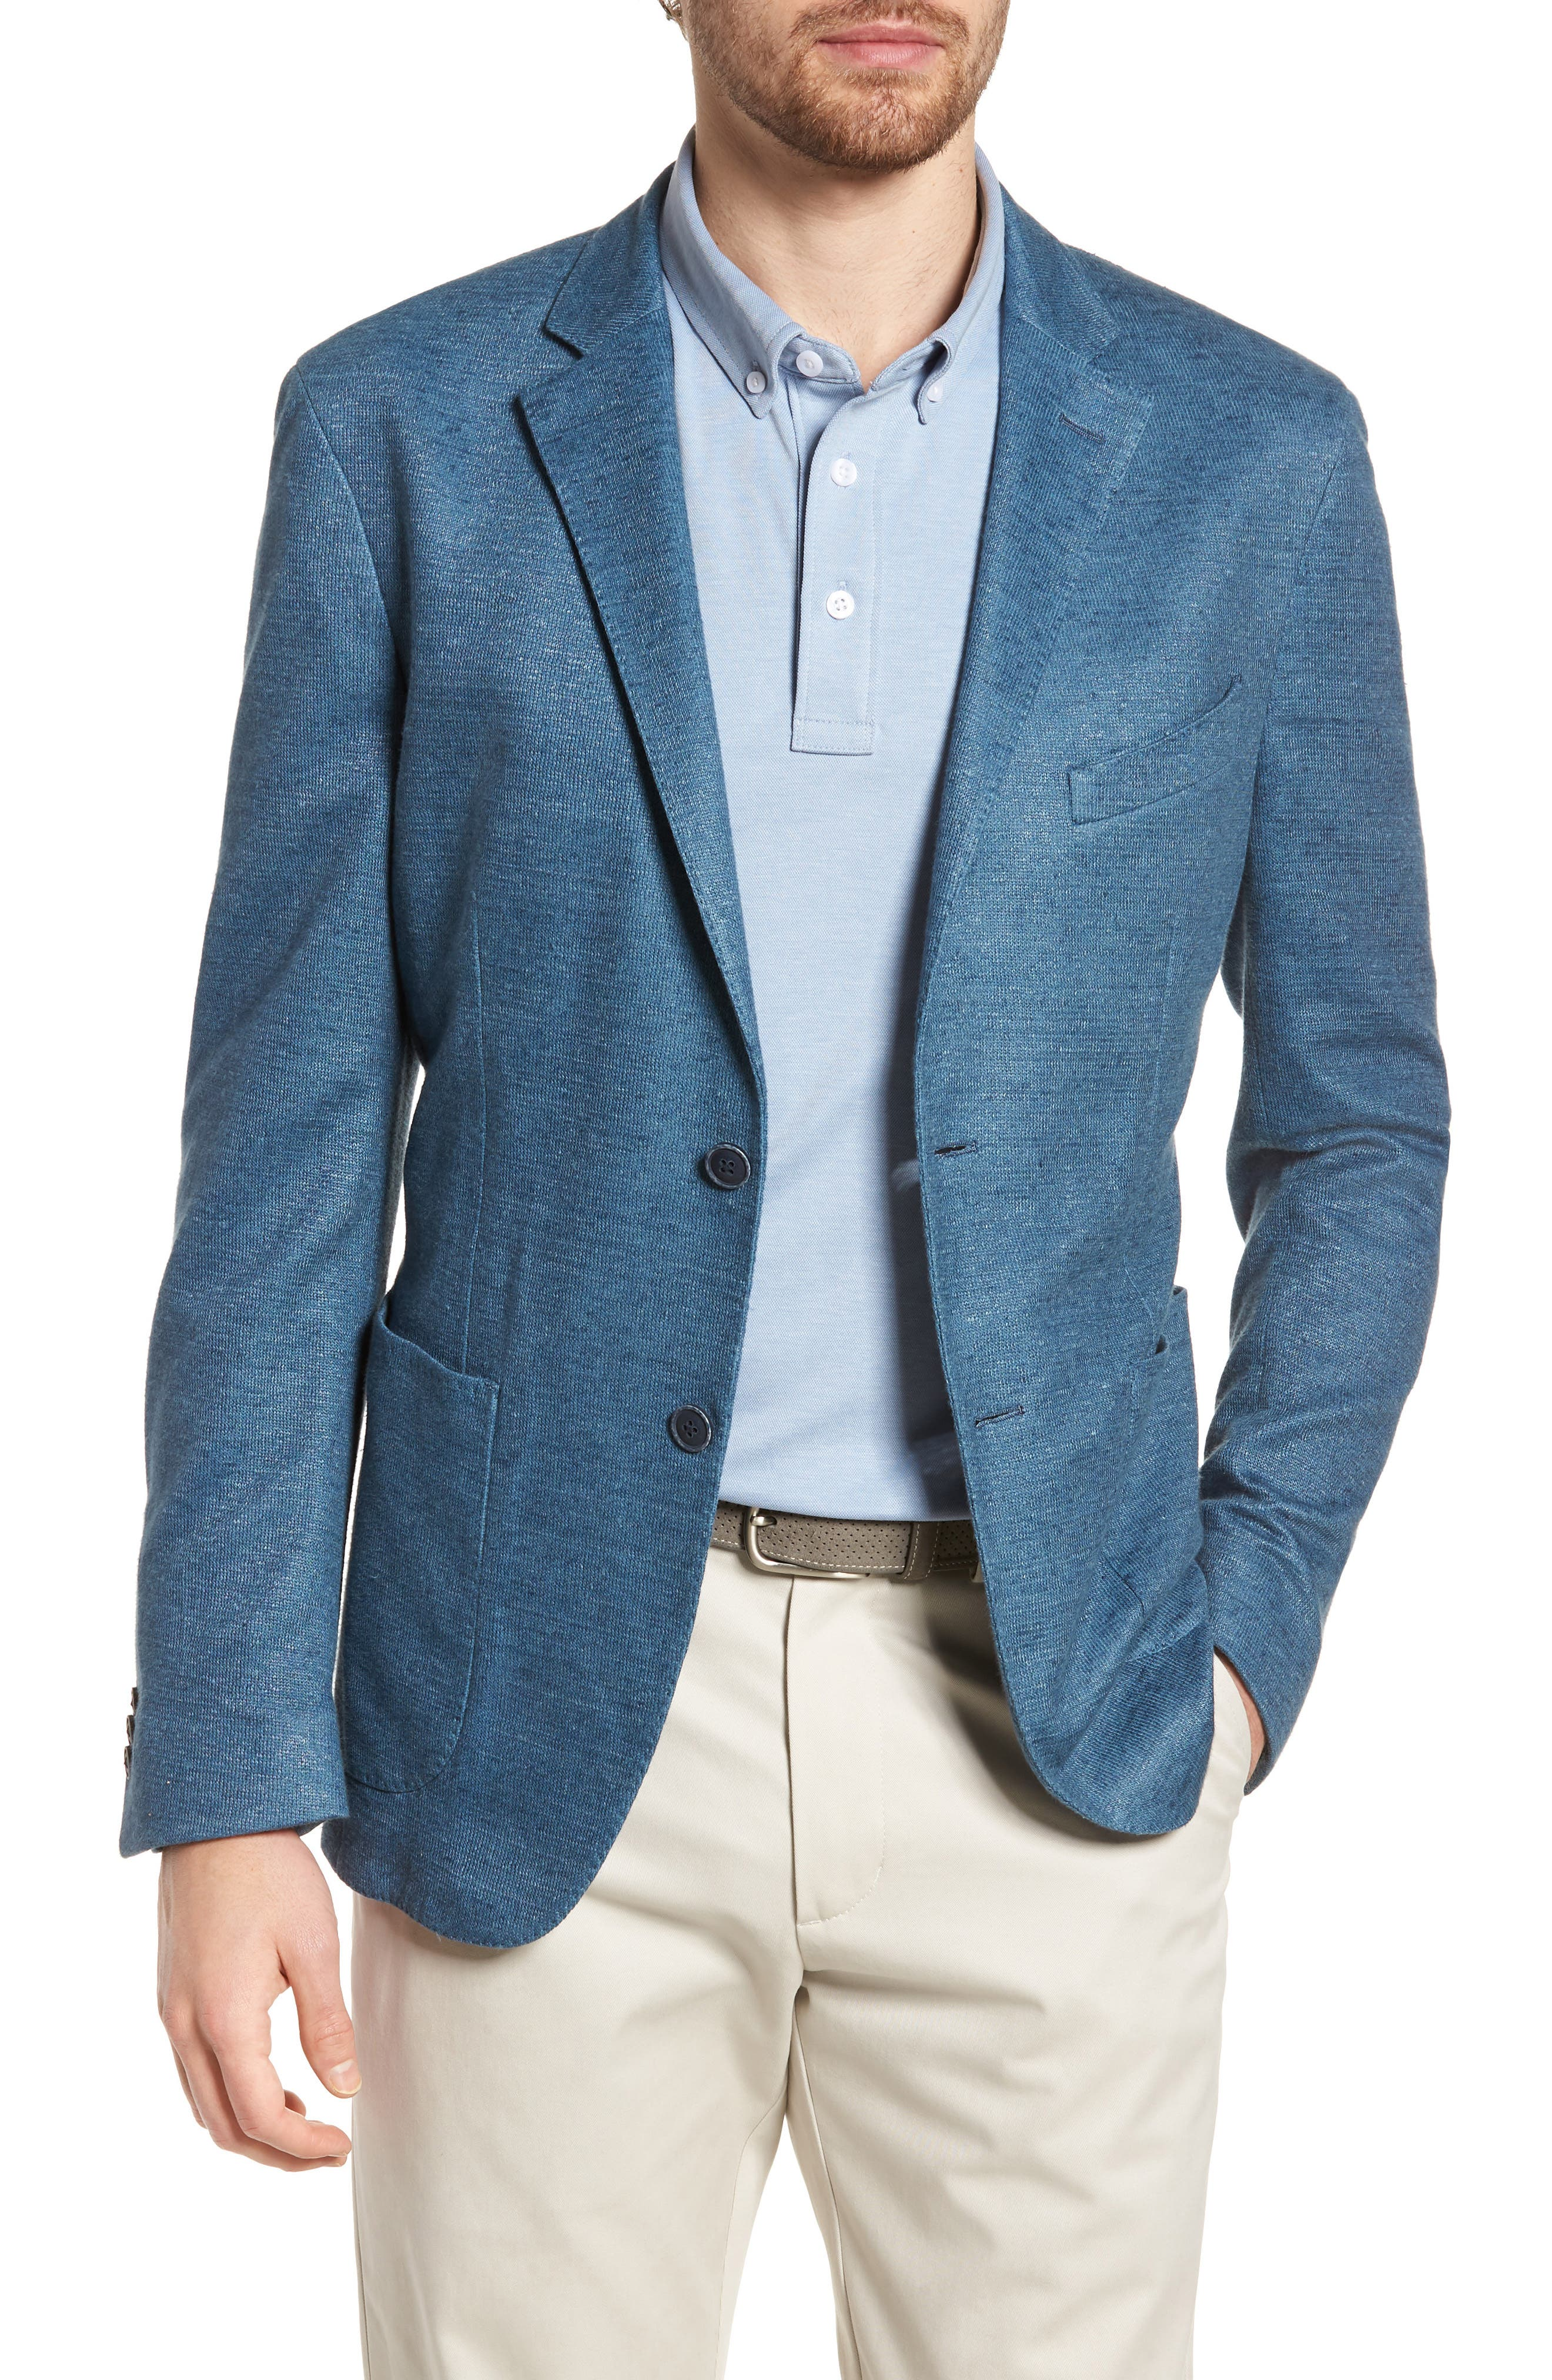 Trim Fit Heathered Jersey Blazer,                         Main,                         color, Blue